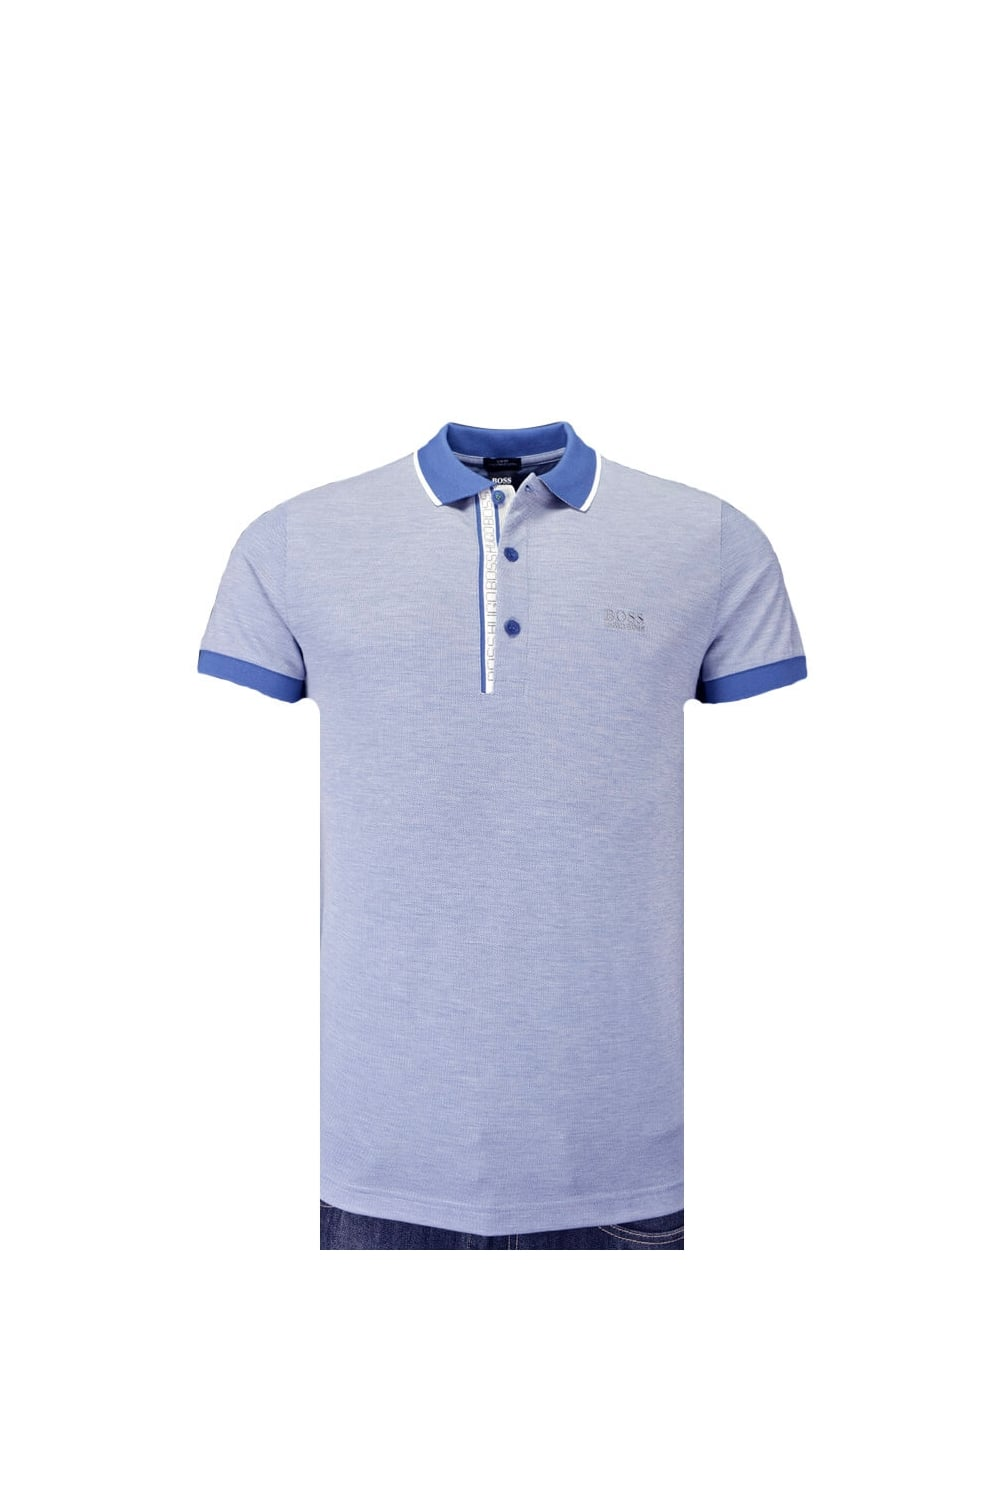 271ab0a62 Hugo Boss Green Paule 4 Polo Shirt Light Blue - Clothing from ...